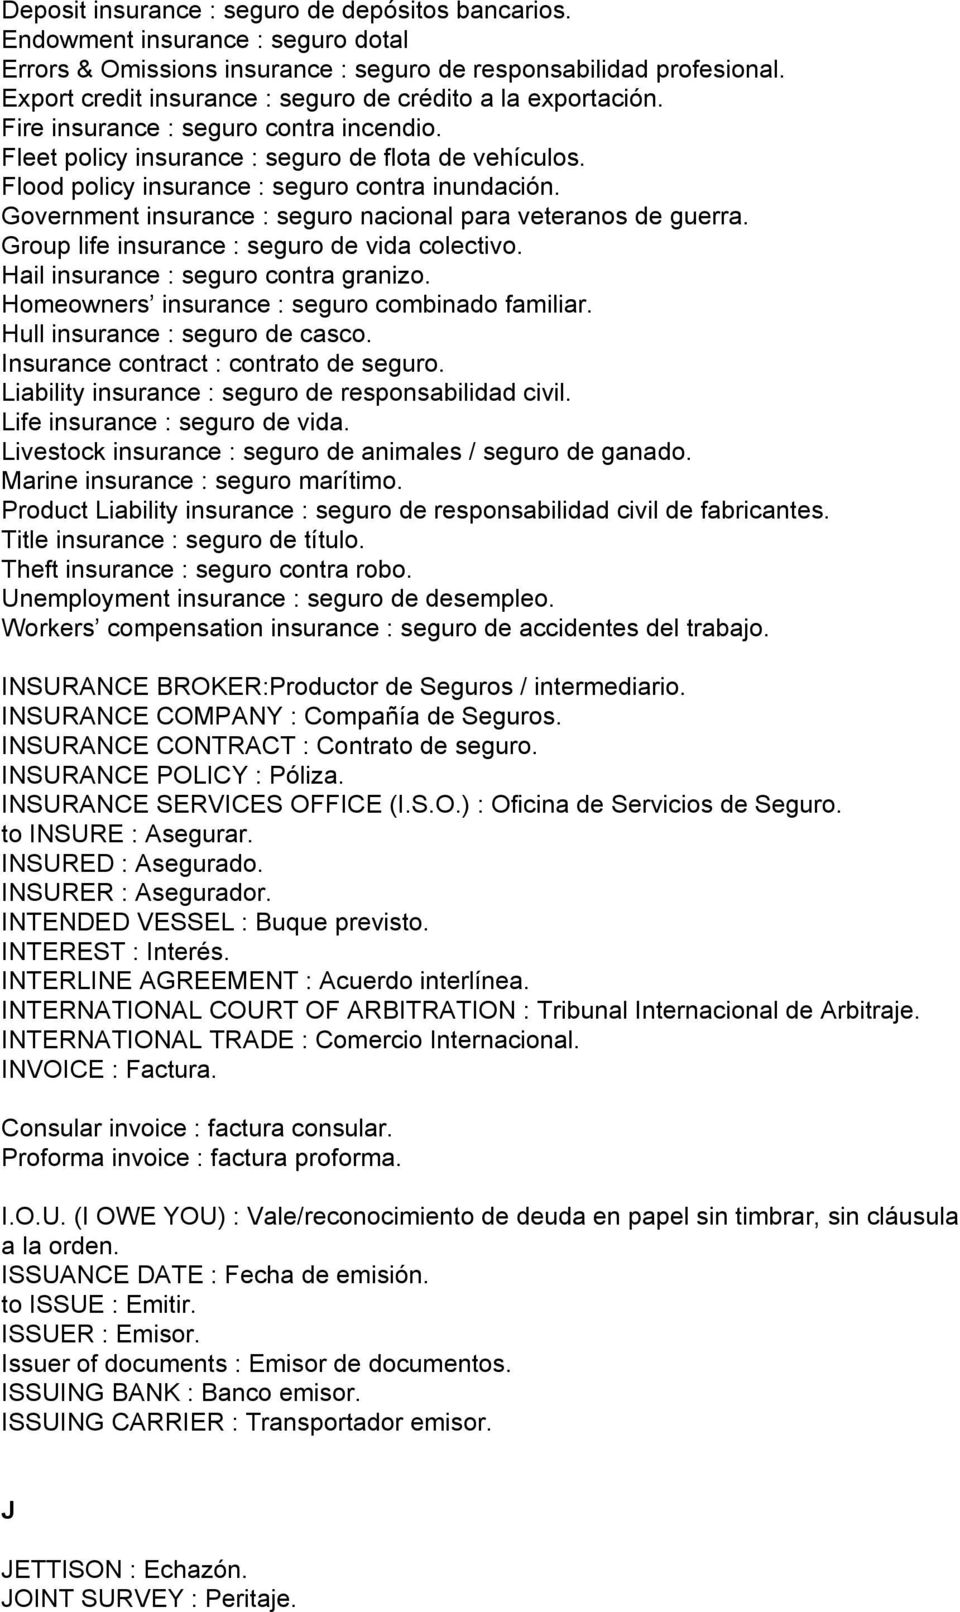 Flood policy insurance : seguro contra inundación. Government insurance : seguro nacional para veteranos de guerra. Group life insurance : seguro de vida colectivo.